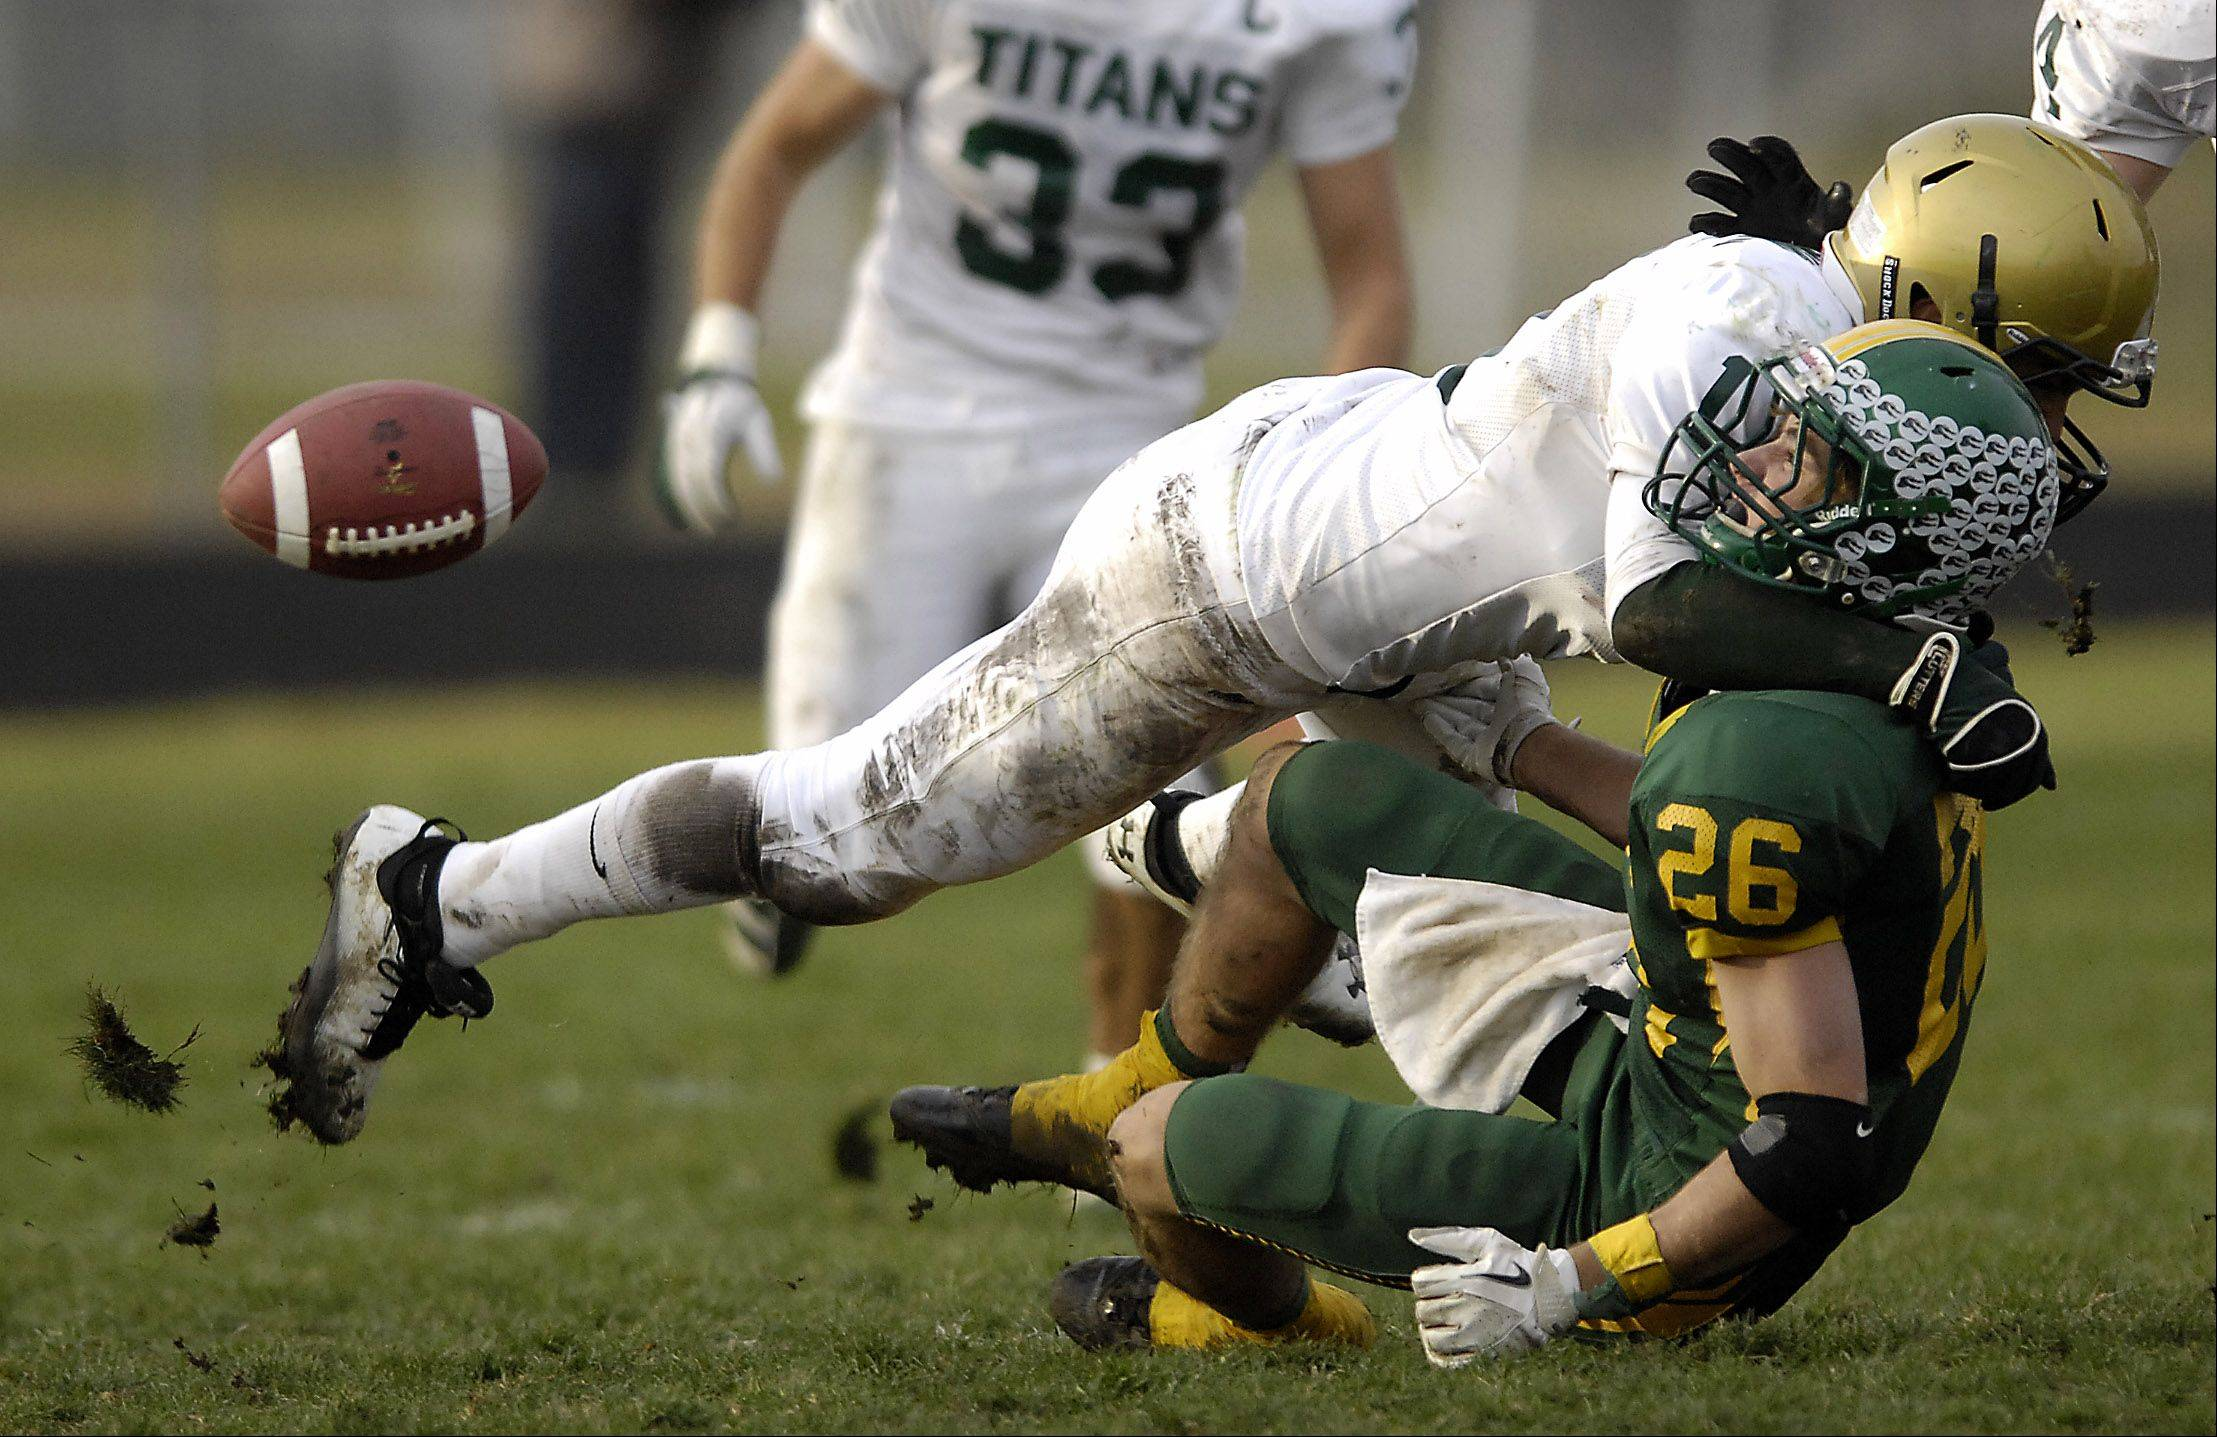 Boylan Catholic's Peter Cimino tackles Crystal Lake South's Brandon LaPak during their quarterfinal game Saturday in Crystal Lake. Boylan Catholic won the game, ending Crystal Lake's season.